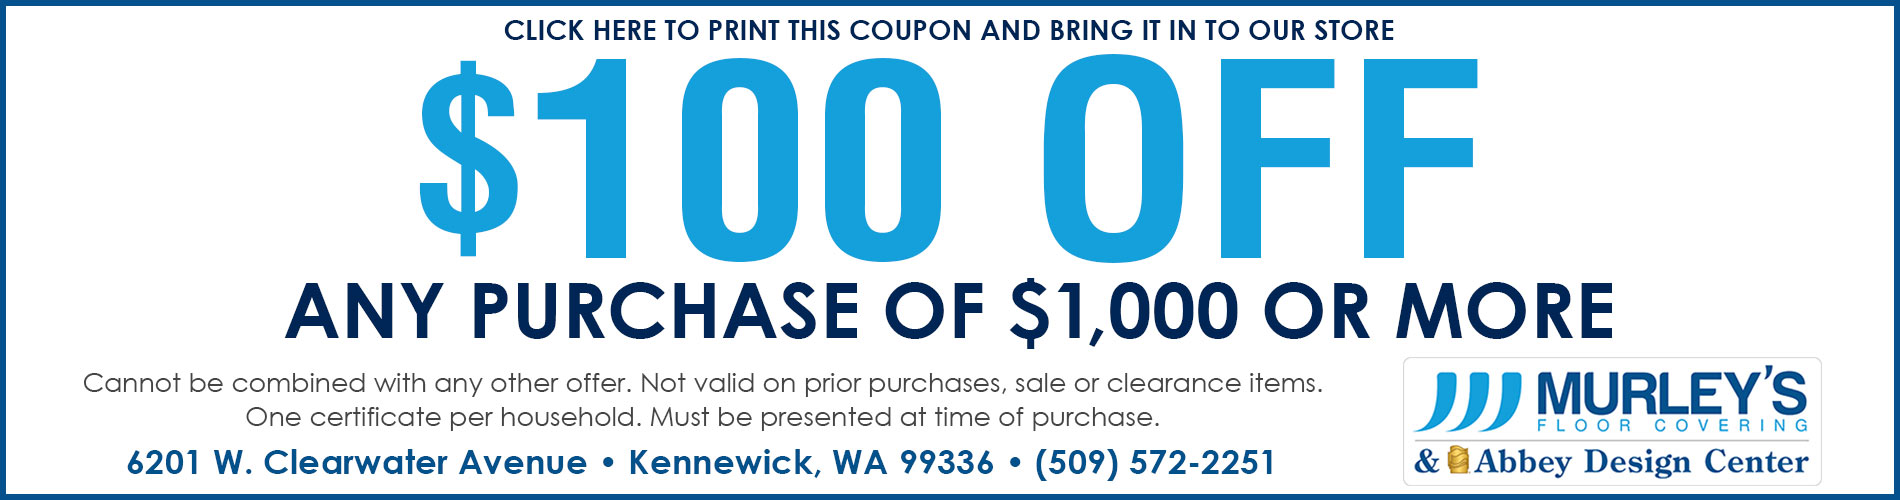 $100 off any purchase of $1,000 or more. Cannot be combined with any other offer. Not valid on prior purchases, sale or clearance items. One certificate per household. Must be presented at time of purchase.